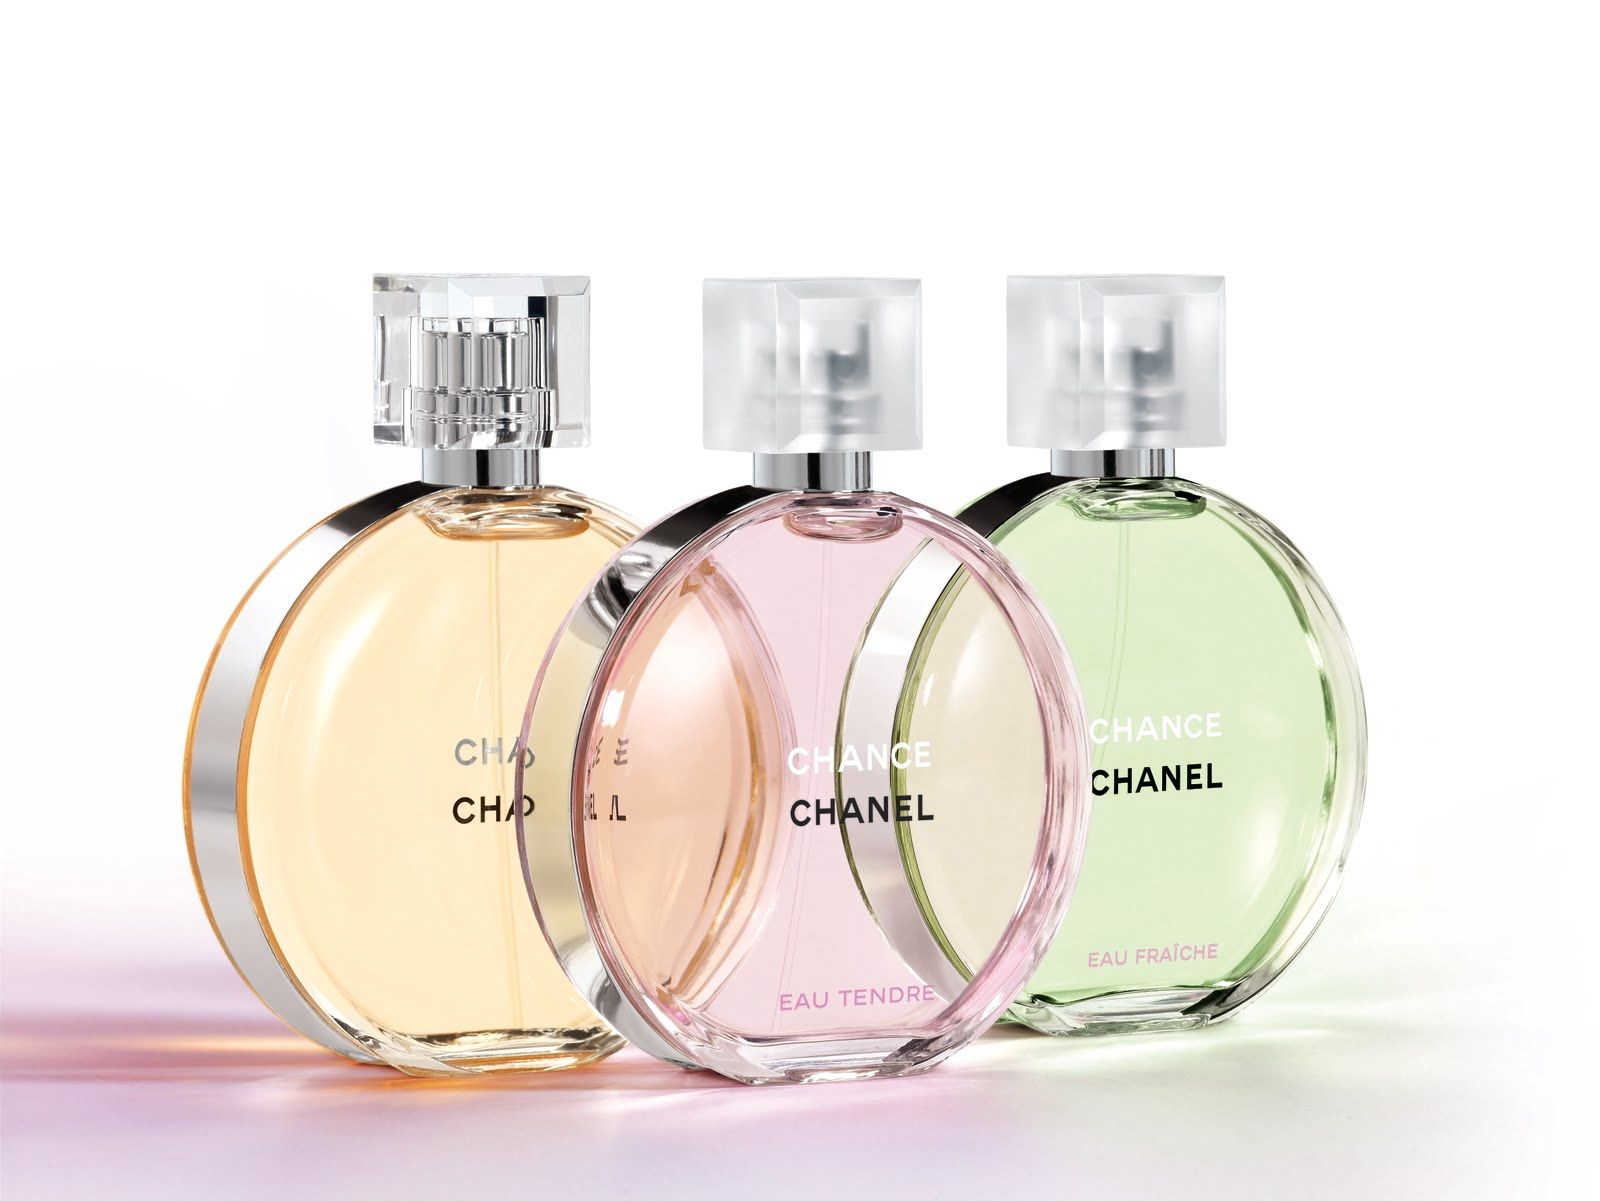 Fragnece Chanel Chance Perfume Follow That Scent Chanel Beauty